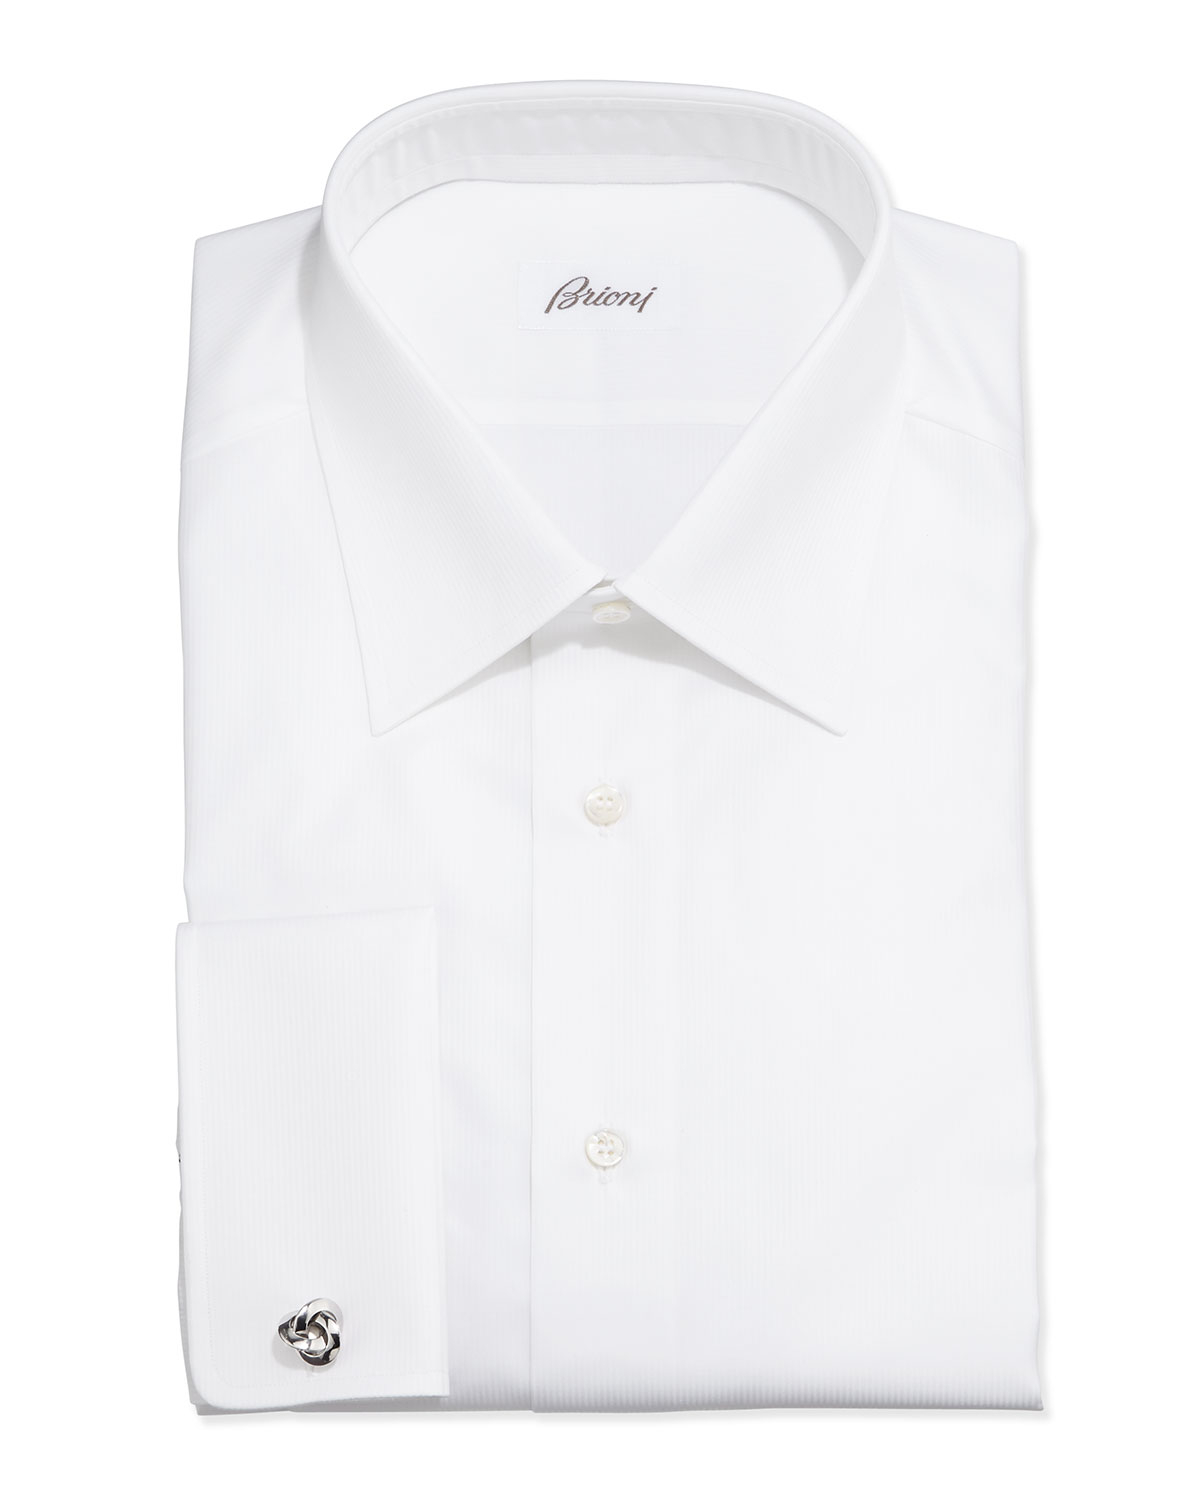 Brioni french cuff shadow stripe dress shirt in white for for French cuff shirts cheap